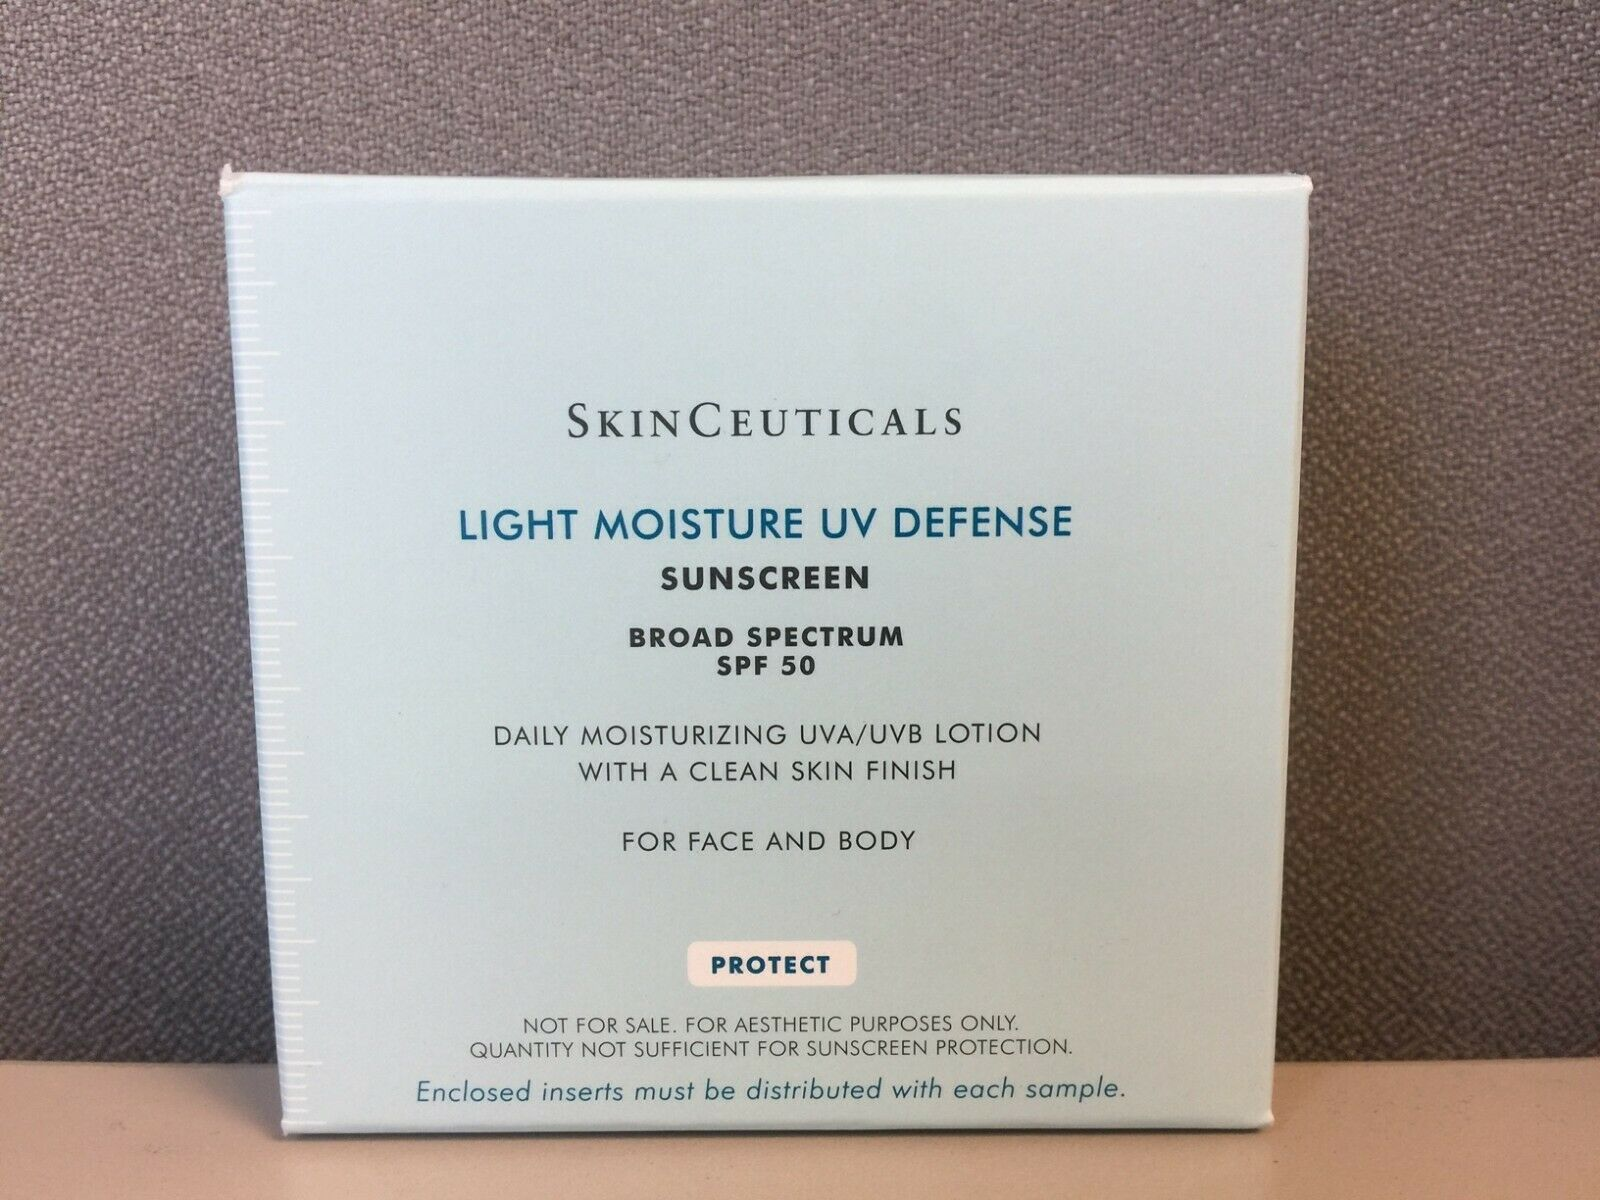 Skinceuticals Light Moisture Uv Defense Sunscreen Spf 50 Box Of 10 Samples